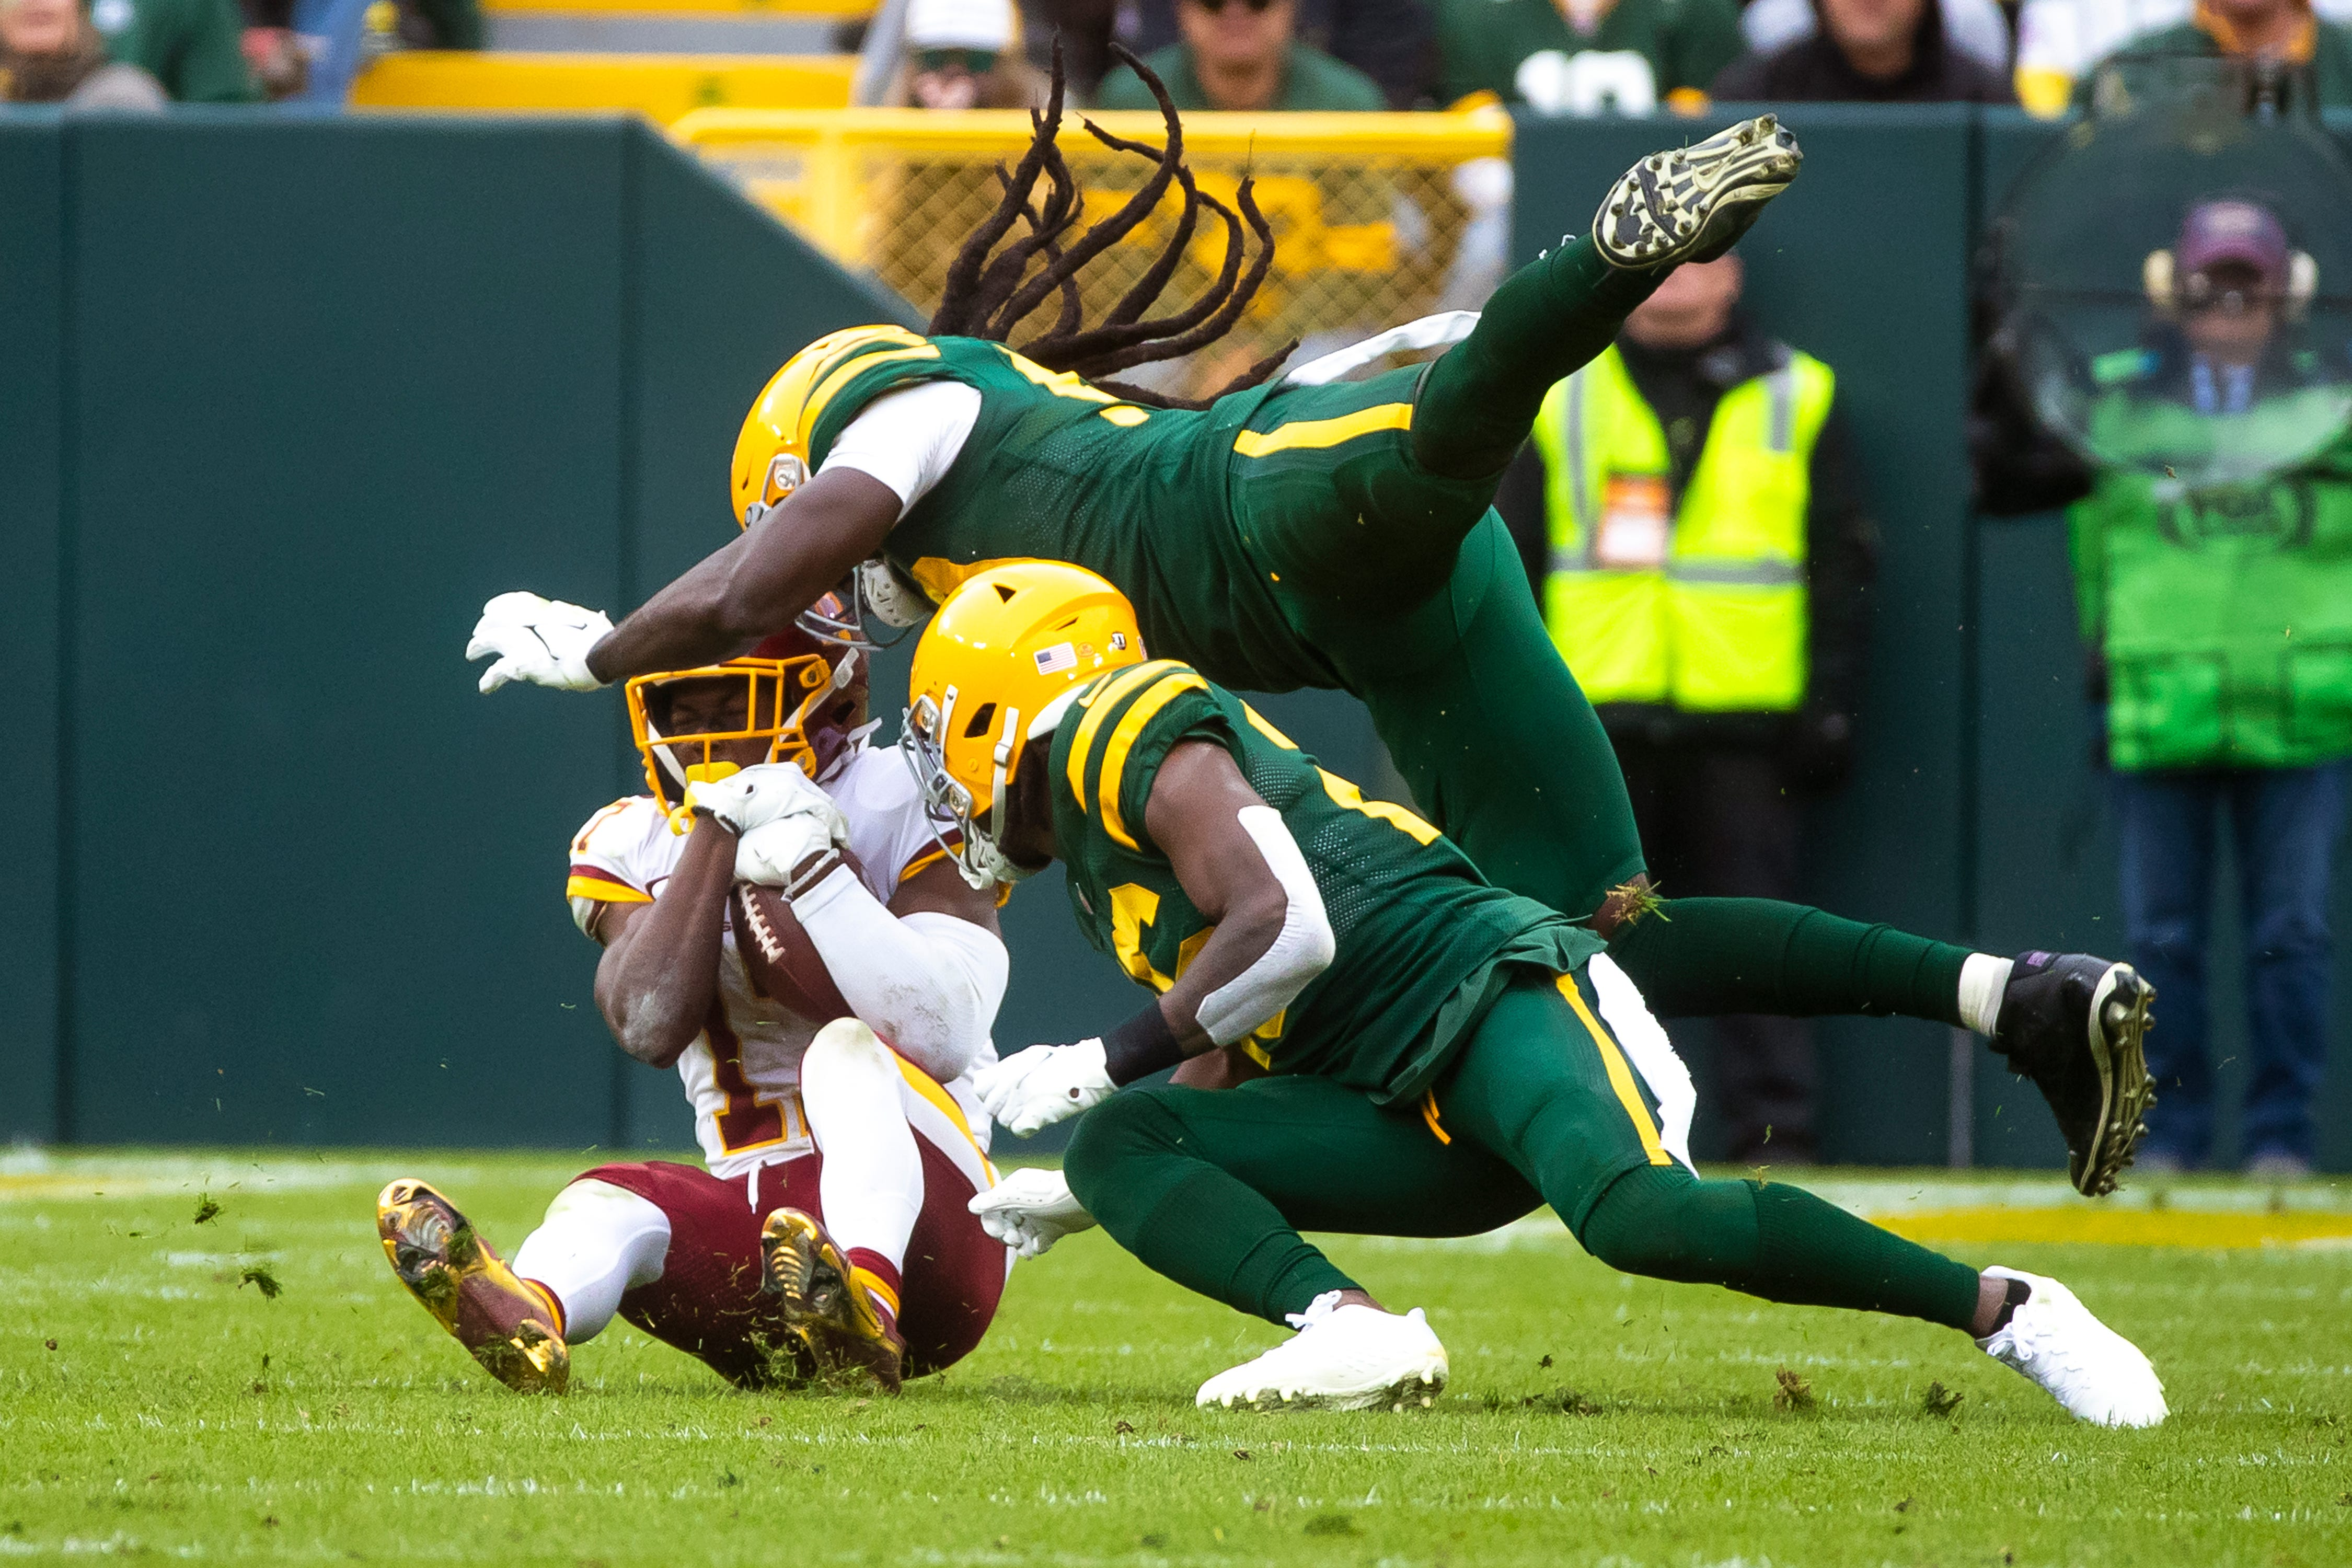 The Packers defense gave up a lot of yards to Washington, but Rashan Gary and De'Vondre Campbell came up big at key moments